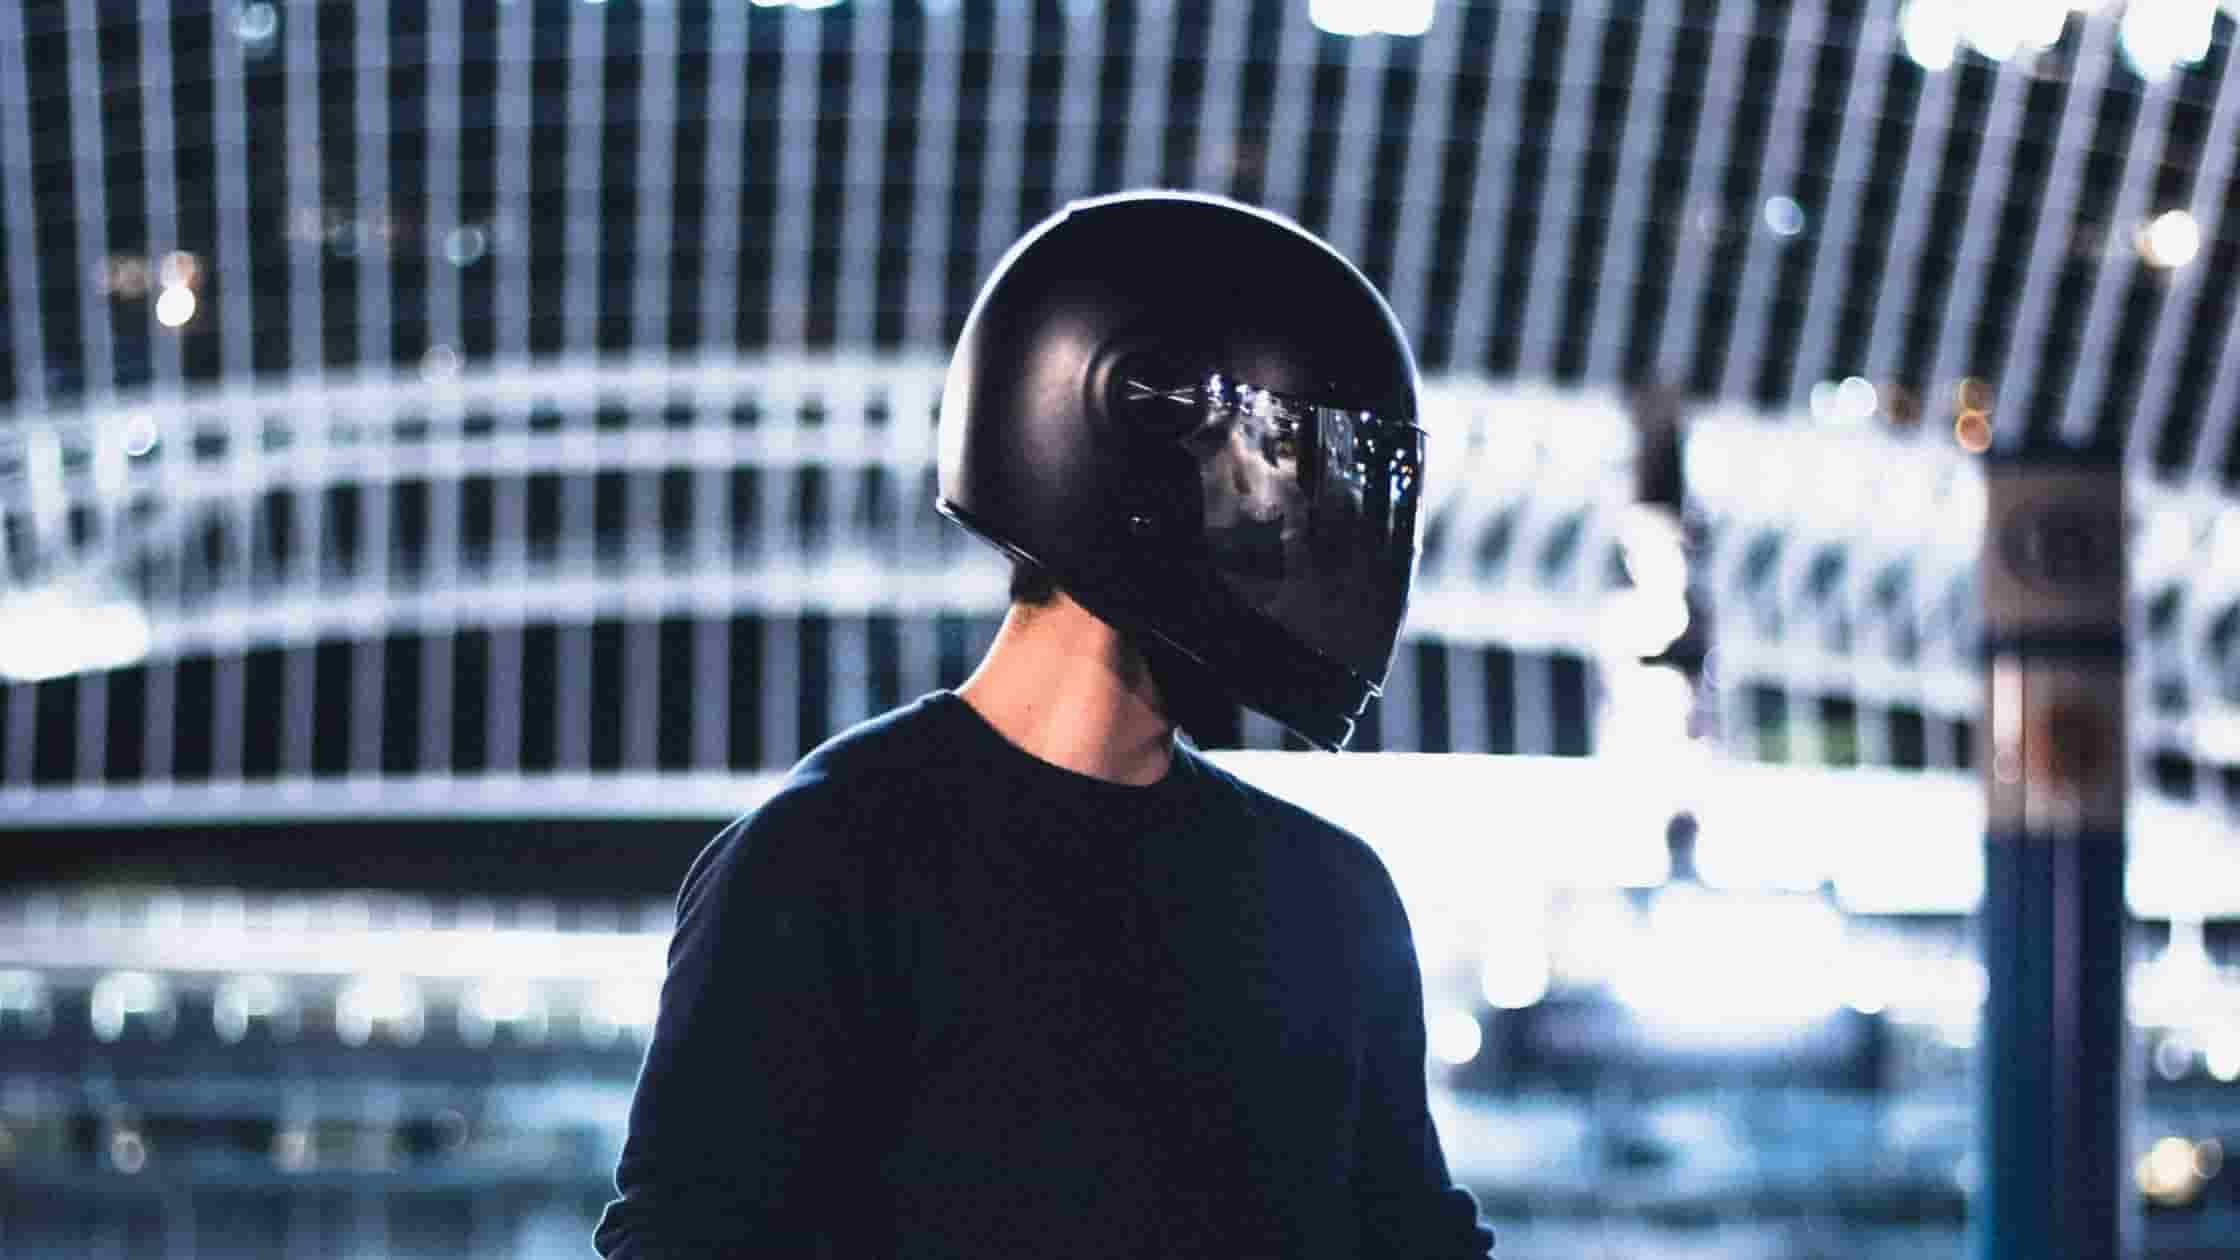 Now Top 10 Best Helmet For Royal Enfield Himalayan in India 2021 [Bengali]